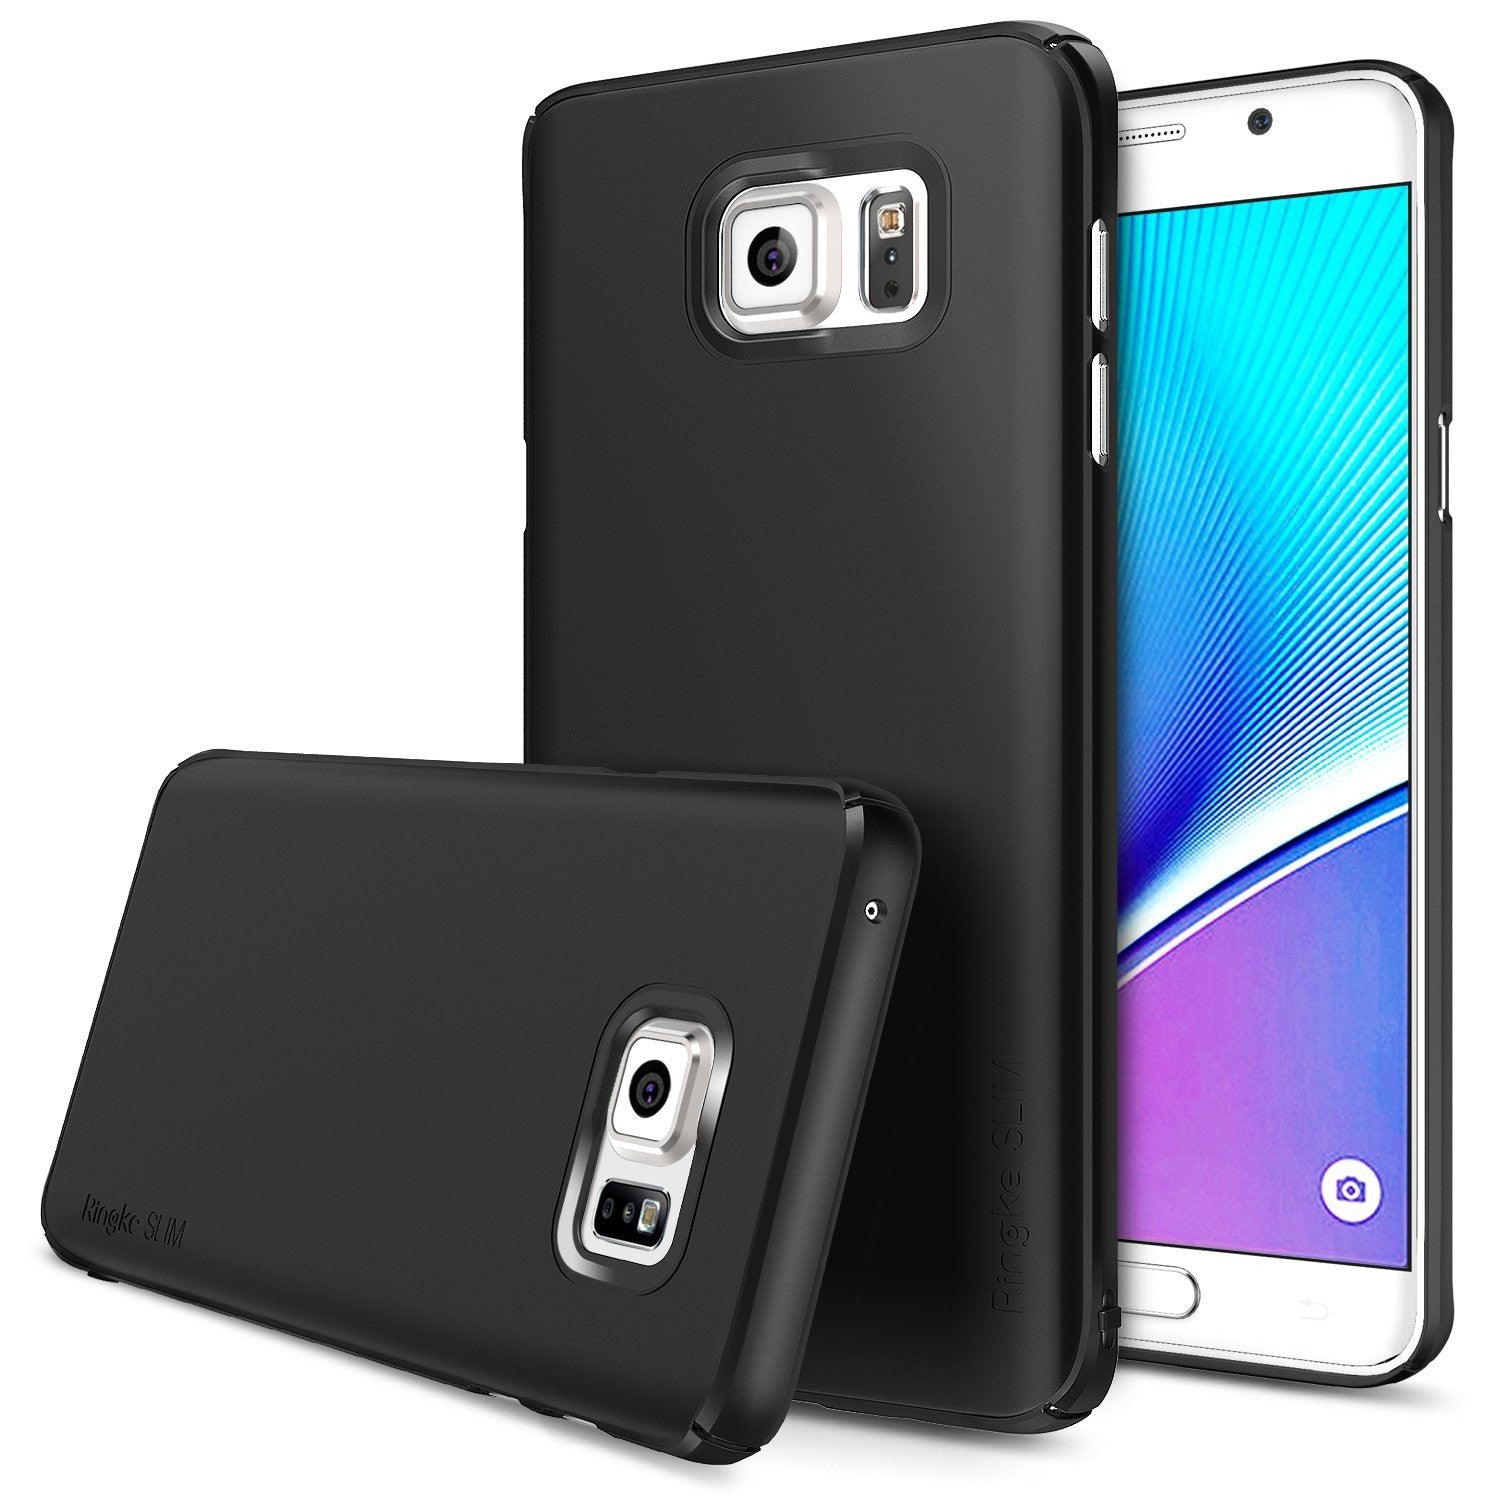 galaxy note 5 slim case